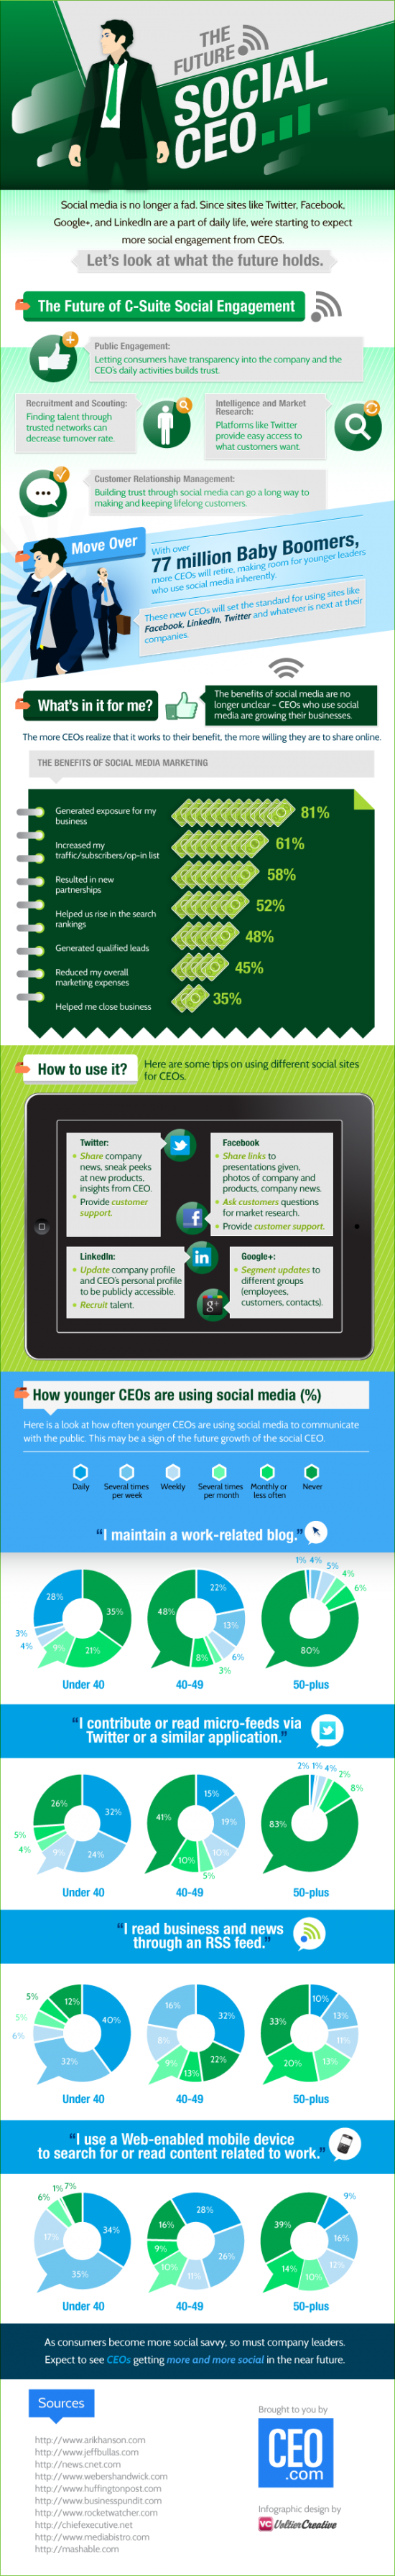 The Future, Social CEO [Infographic]